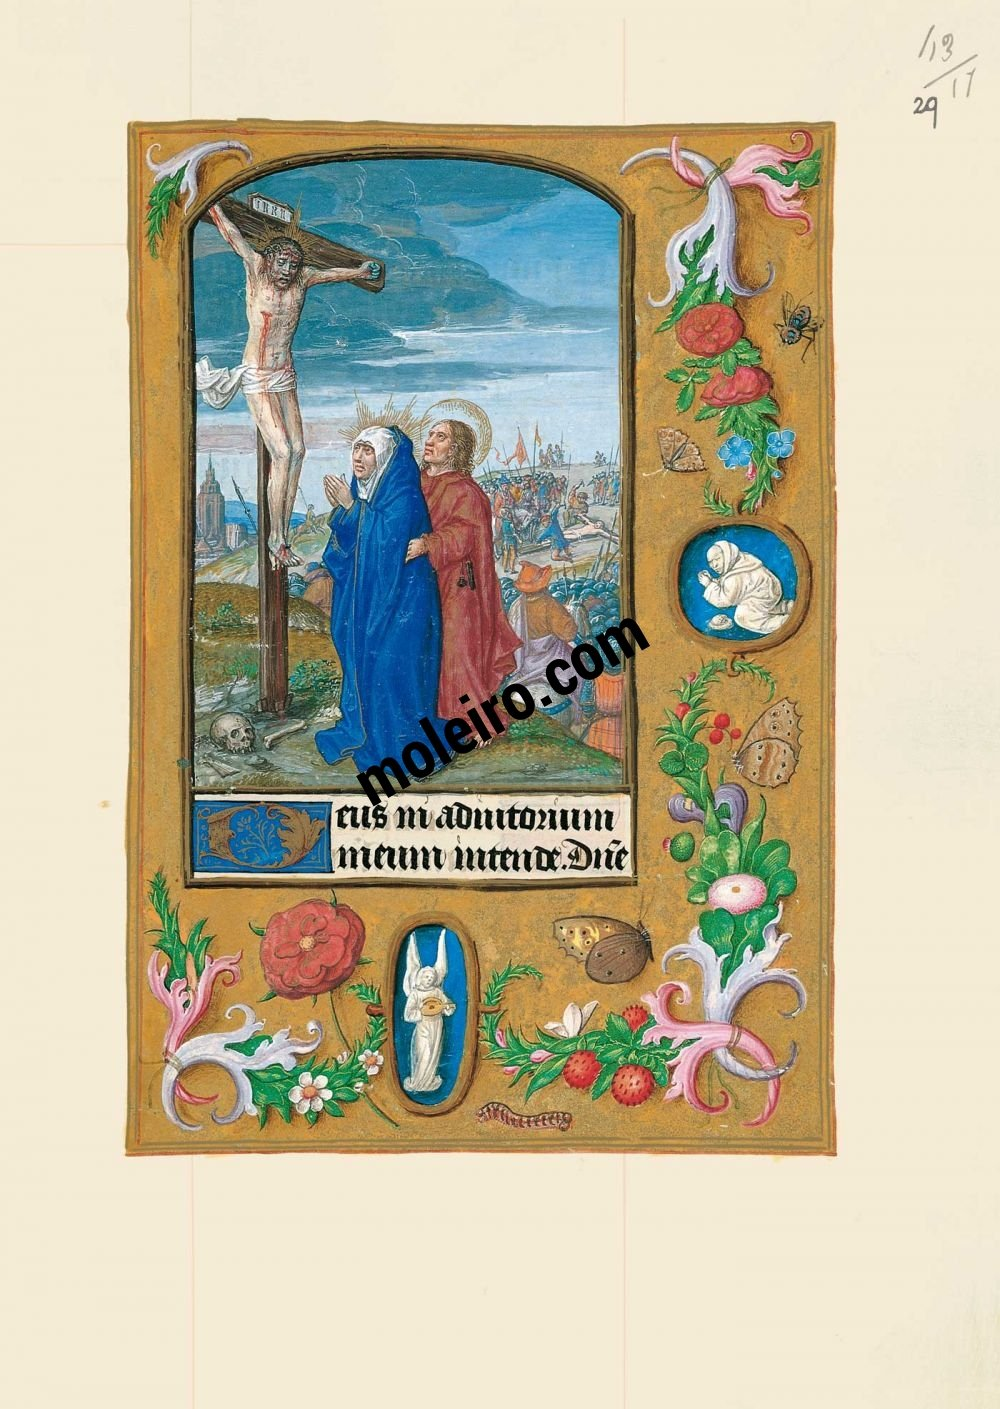 The Hours of Joanna I of Castile, Joanna the Mad (The London Rothschild Prayerbook) f. 29r, Jesus nailed to the cross and the crucifixion